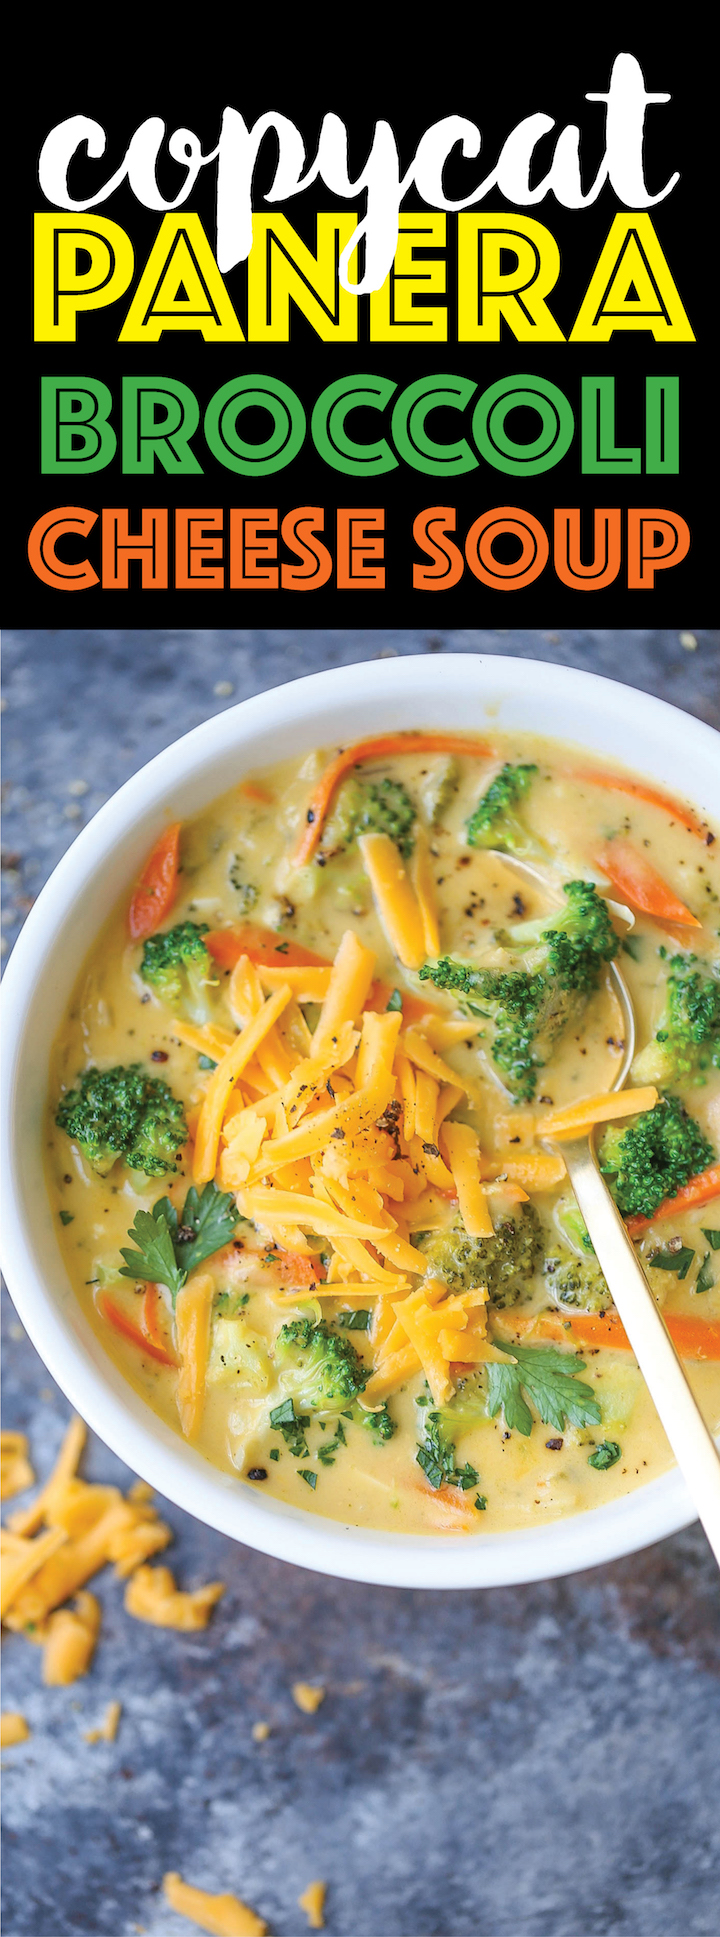 Copycat Panera Broccoli Cheese Soup - Now you can make everyone's favorite broccoli cheese soup right at home - so thick and creamy. It's unbelievably good!